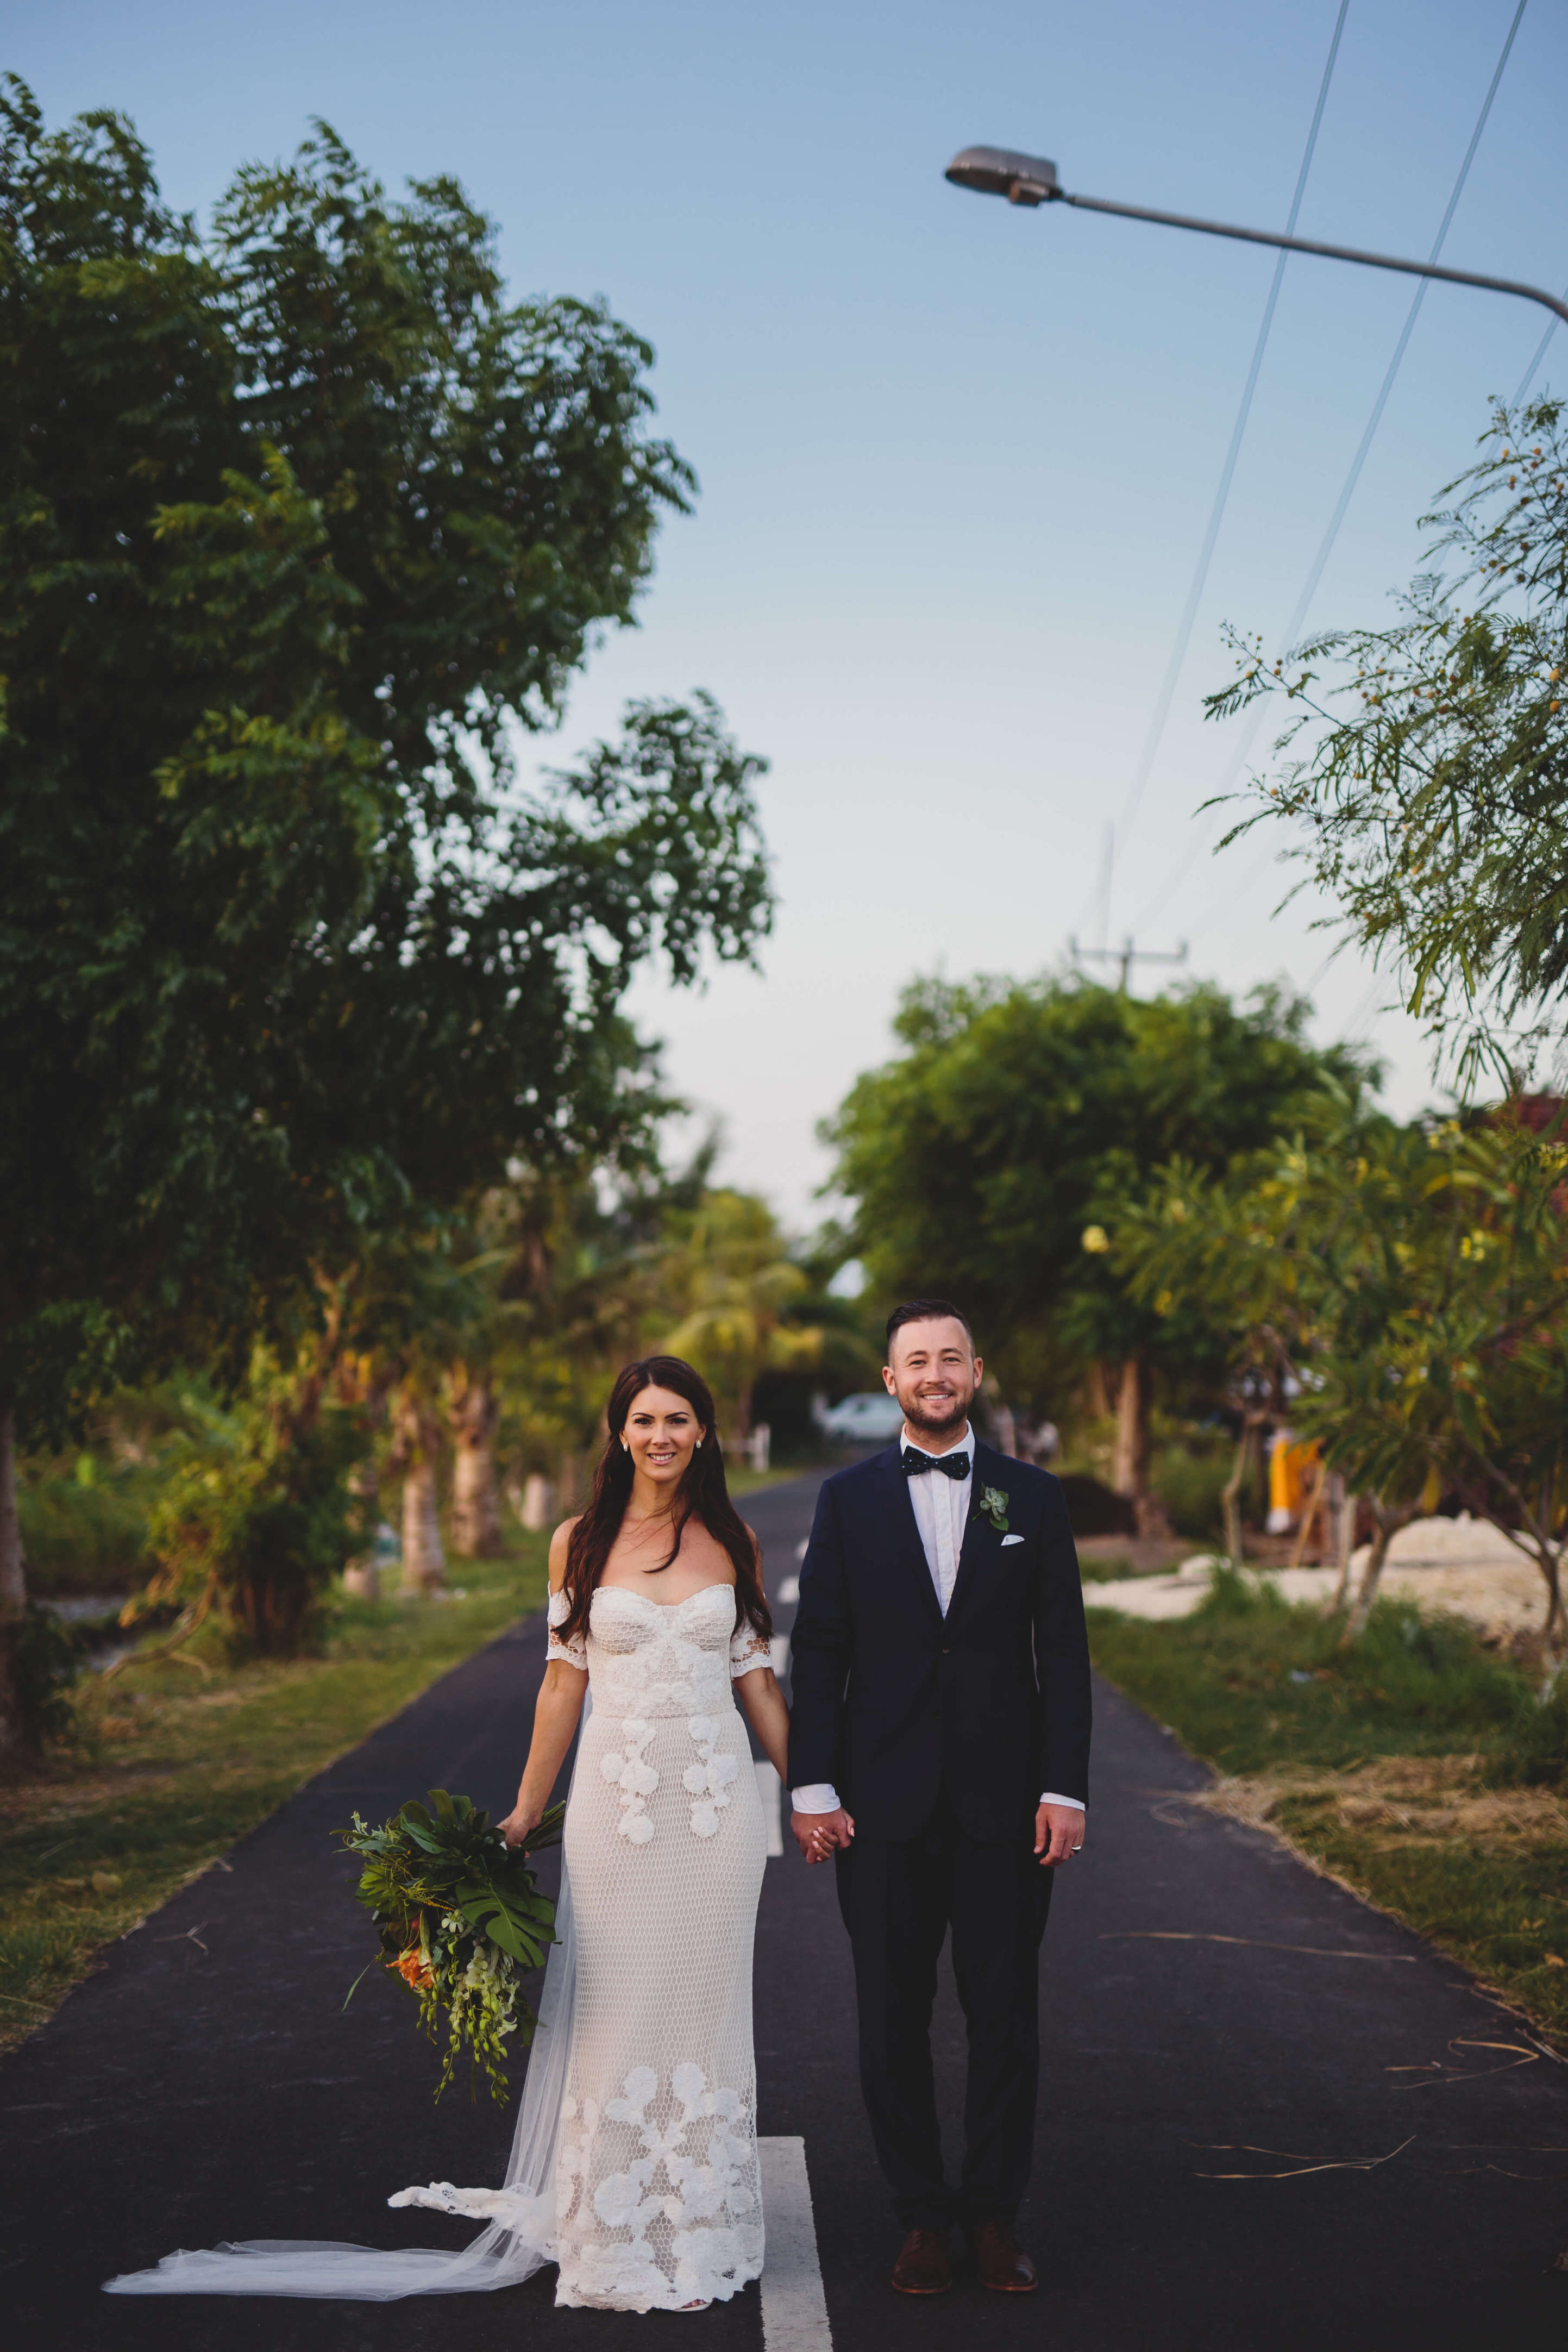 Embracing That Tropical Vibe for Your Wedding: This Bride Shows Us ...